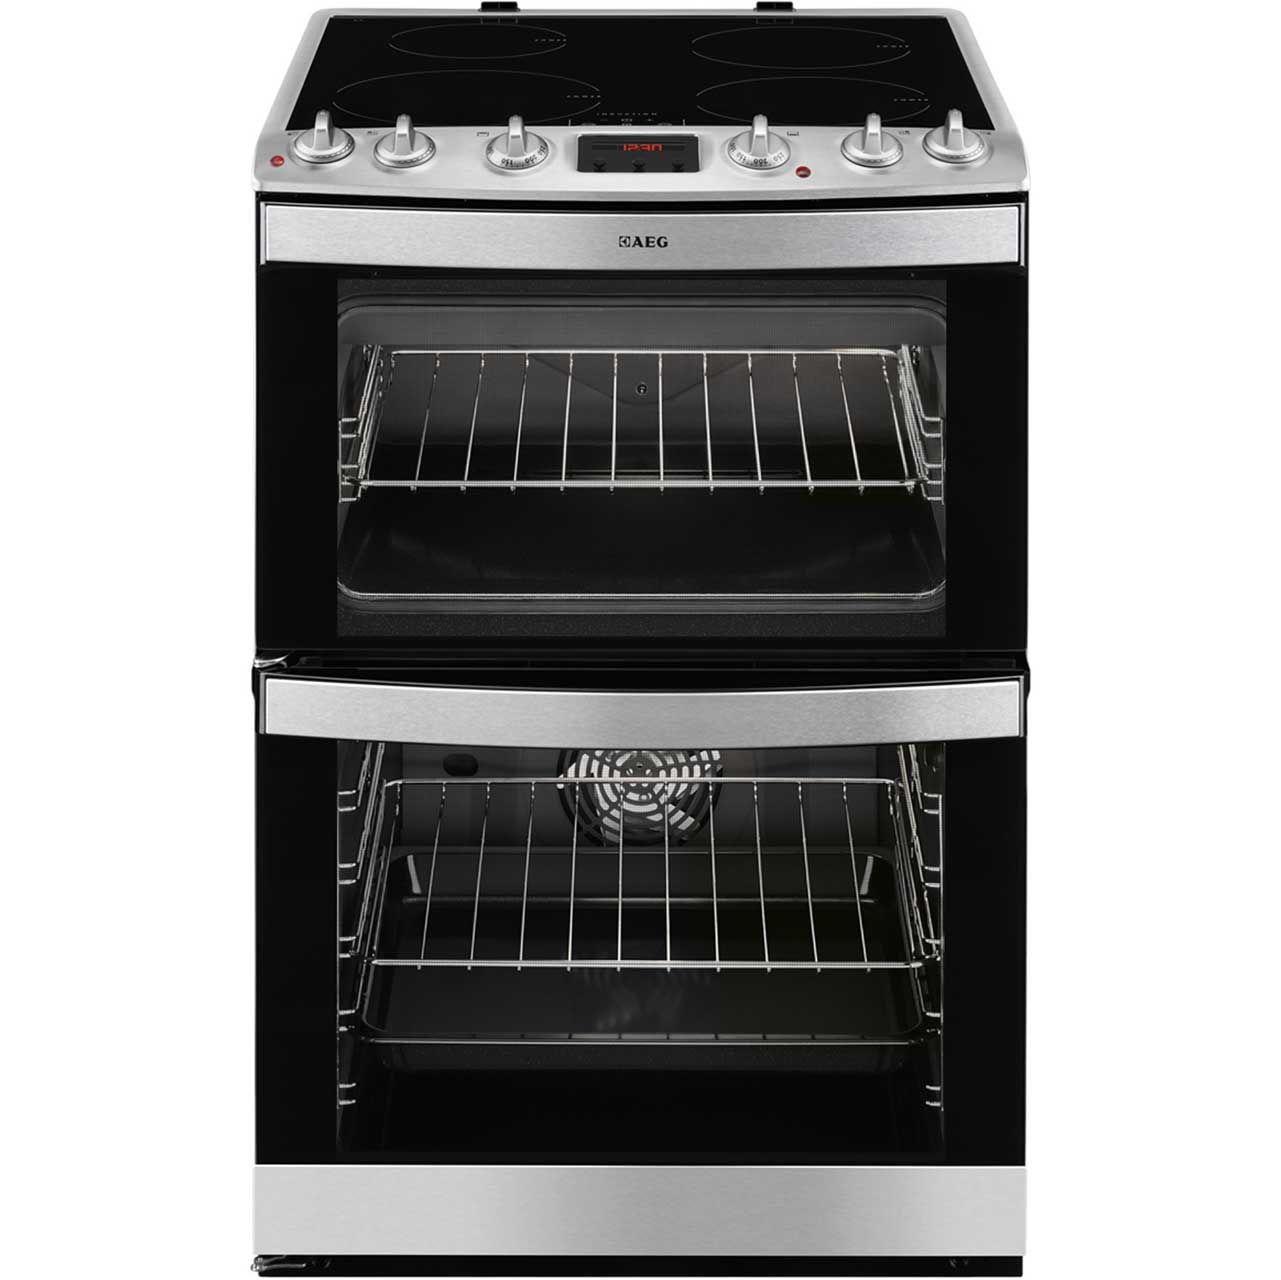 41102iu mn ss  aeg cookers   a a energy rating   ao com 41102iu mn ss  aeg cookers   a a energy rating   ao com   products      rh   pinterest com